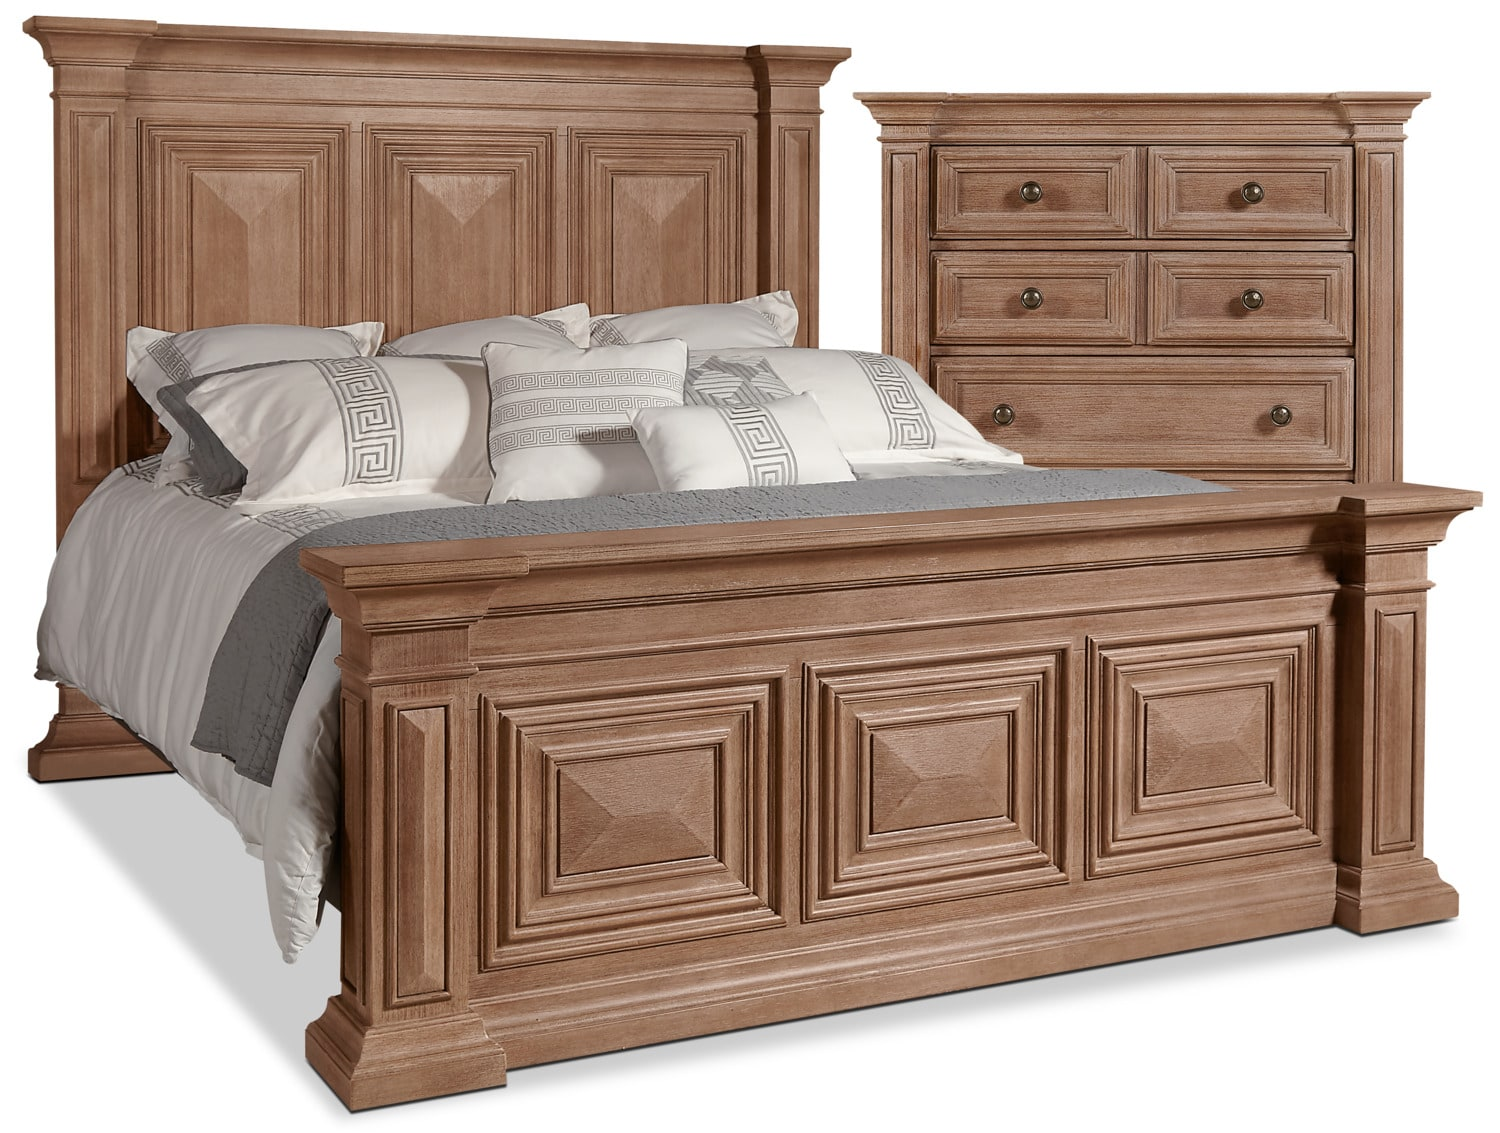 Bedroom Furniture - Sedona 4-Piece Queen Bed and Chest Package